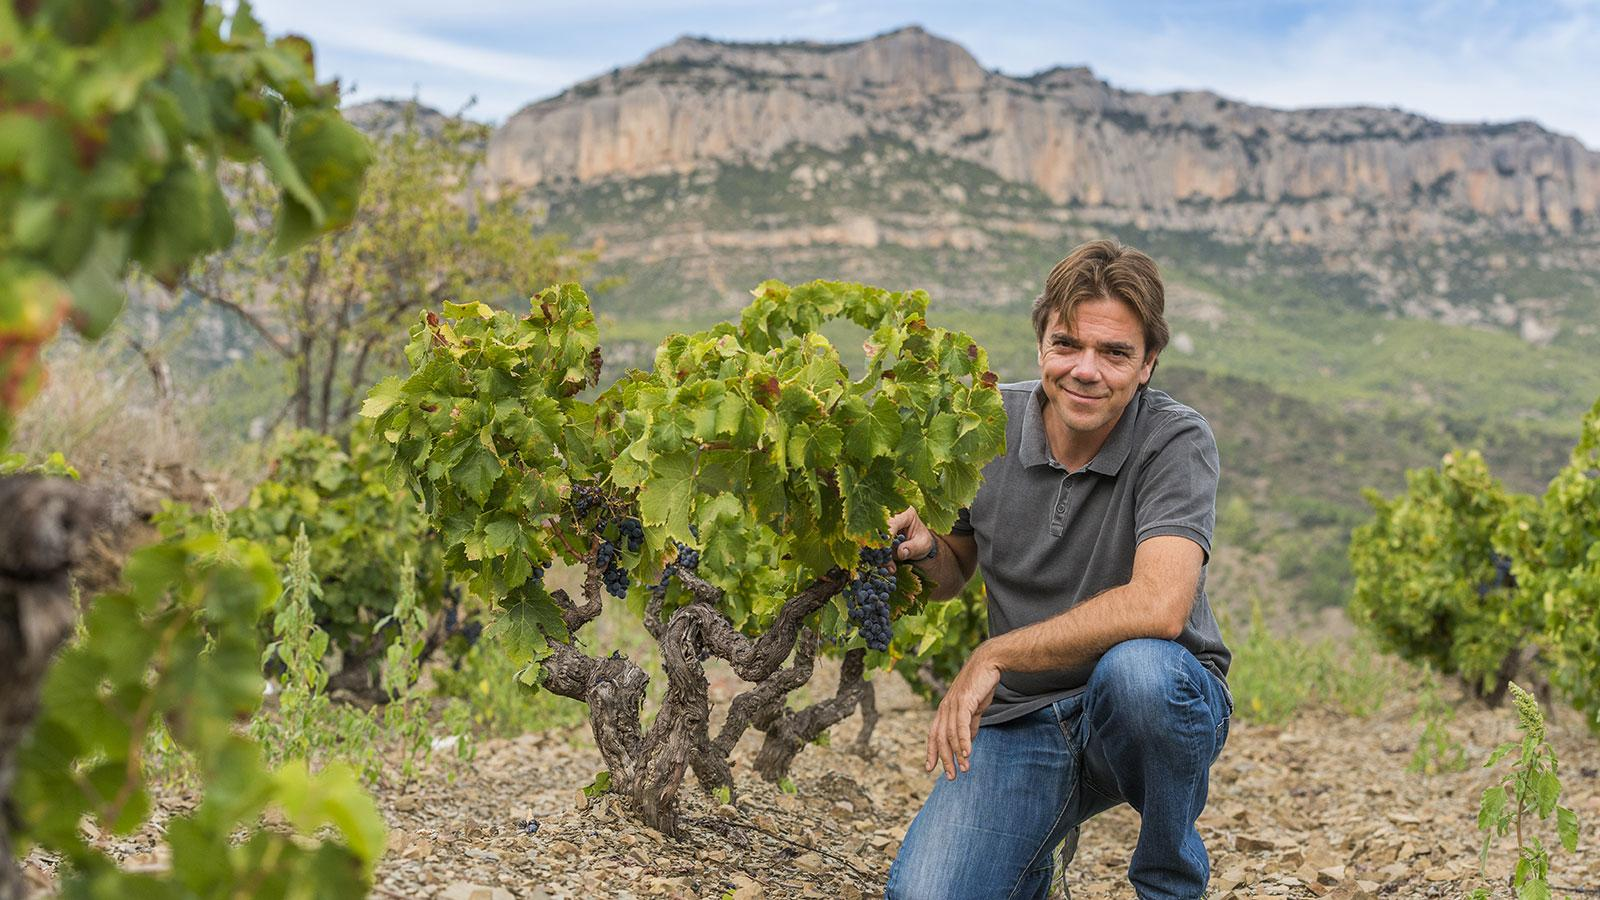 Winemaker Talk: Scala Dei's Ricard Rofes